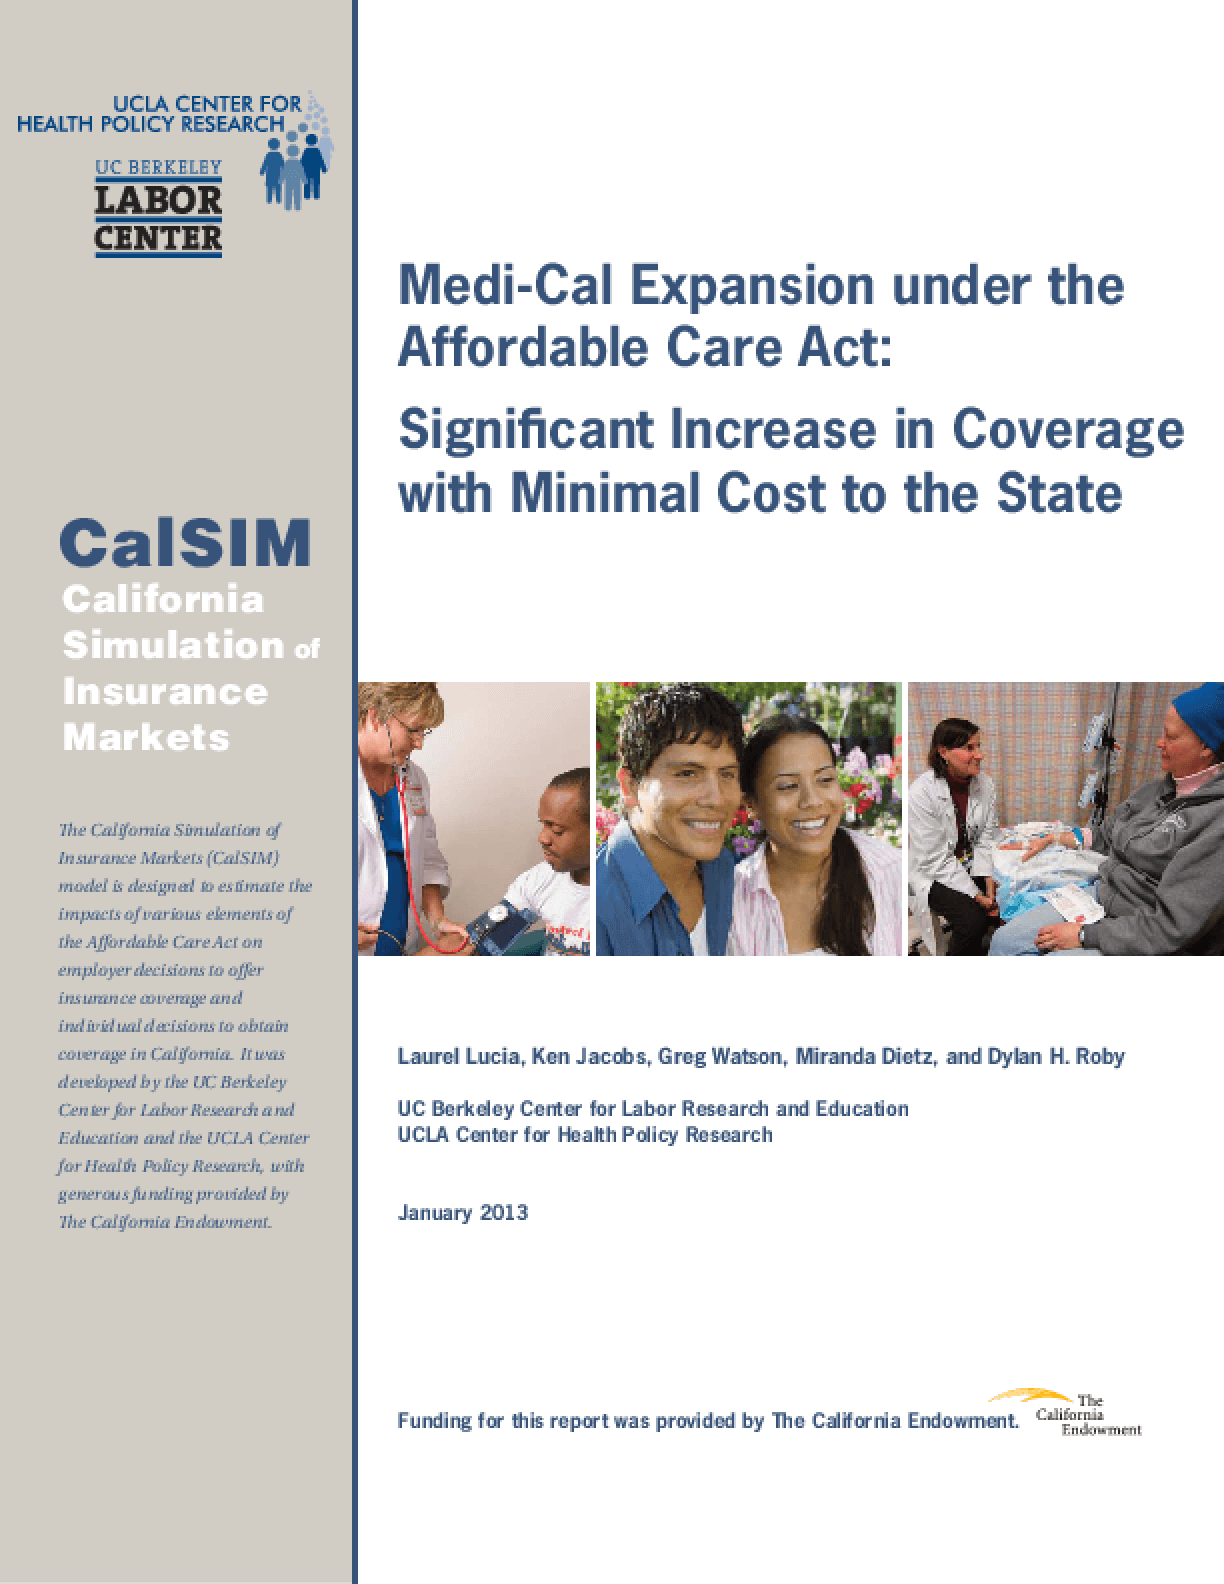 Medi-Cal Expansion under the Affordable Care Act: Significant Increase in Coverage with Minimal Cost to the State